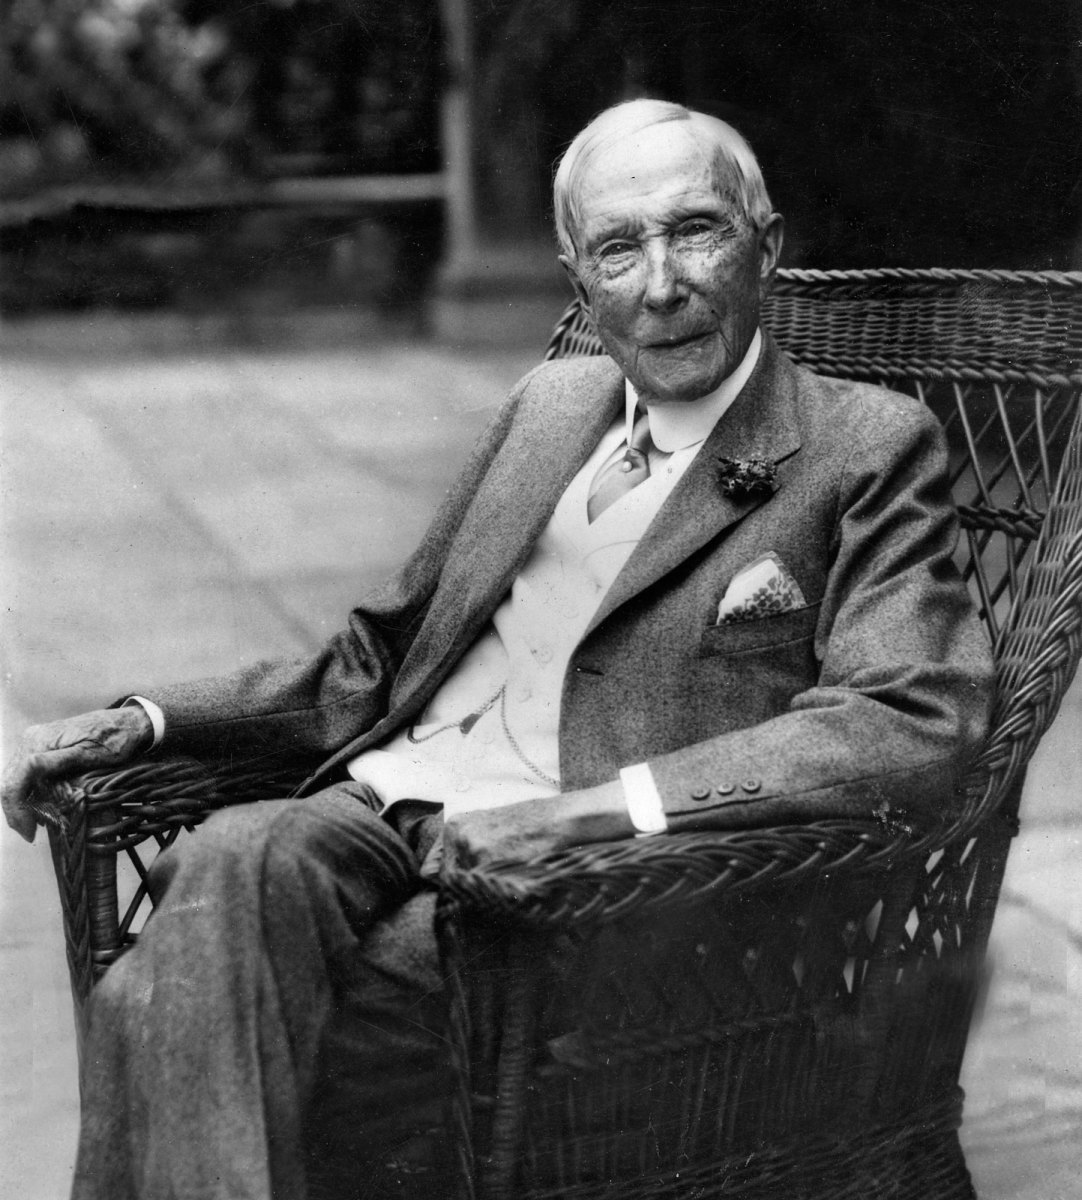 Richest People: John D Rockefeller, Donald Trump, and Mitt Romney